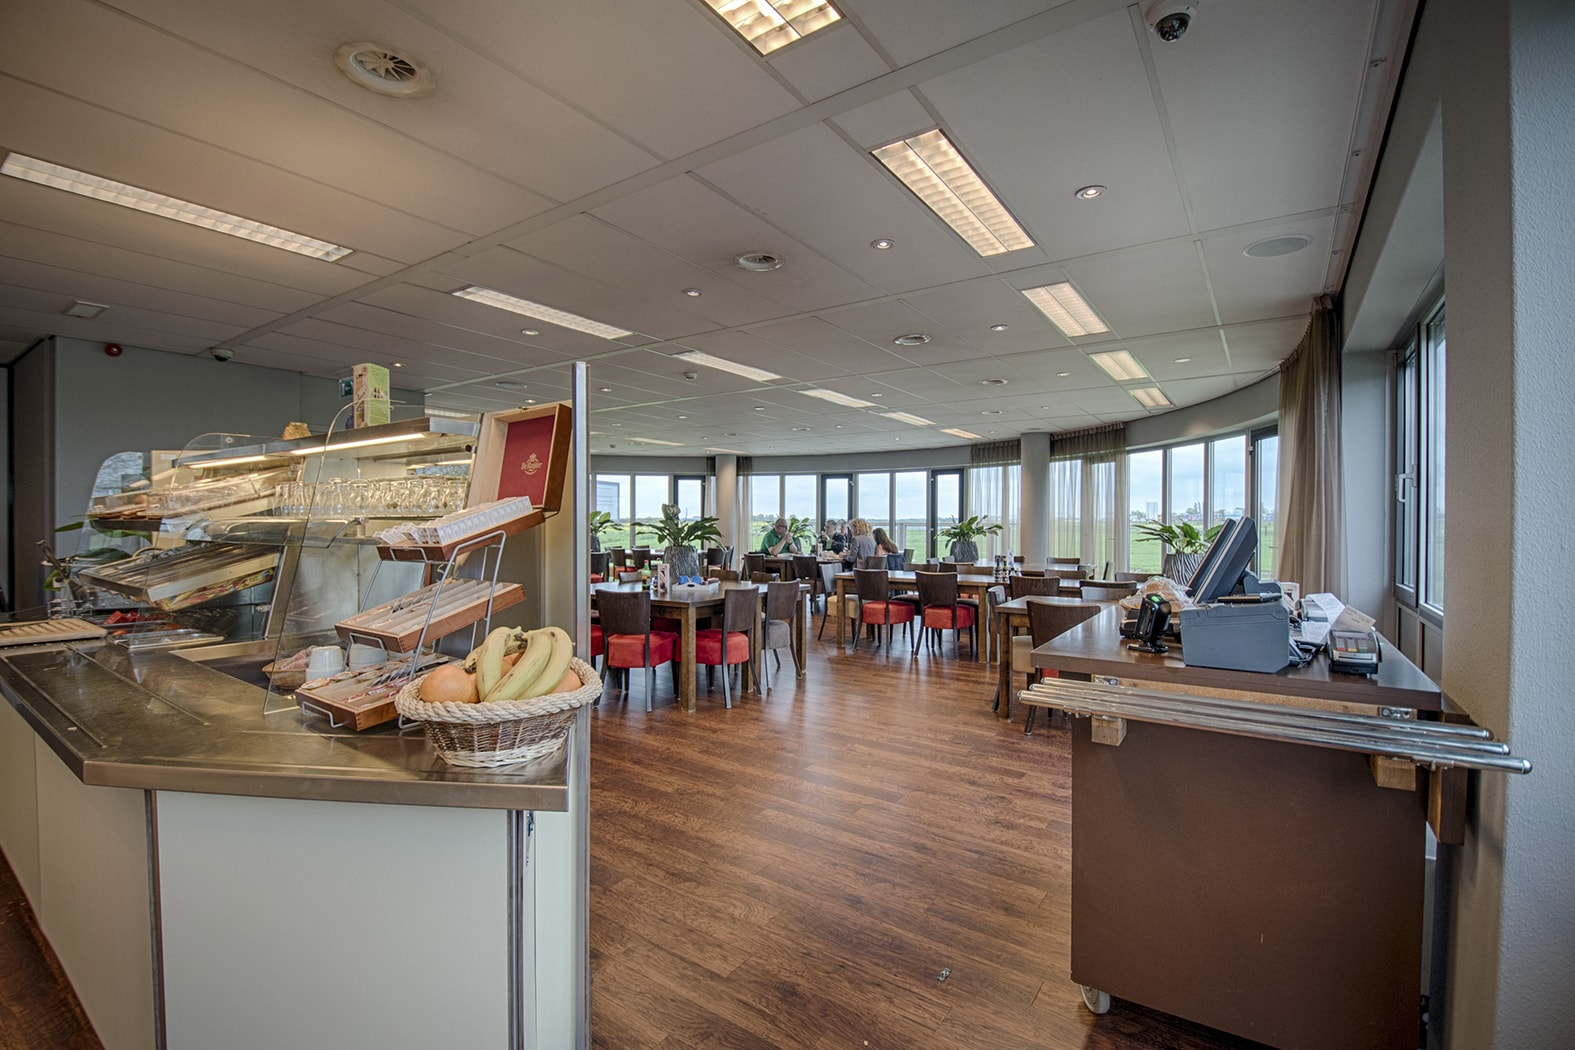 Restaurant Crown | Crown Business Center Bodegraven